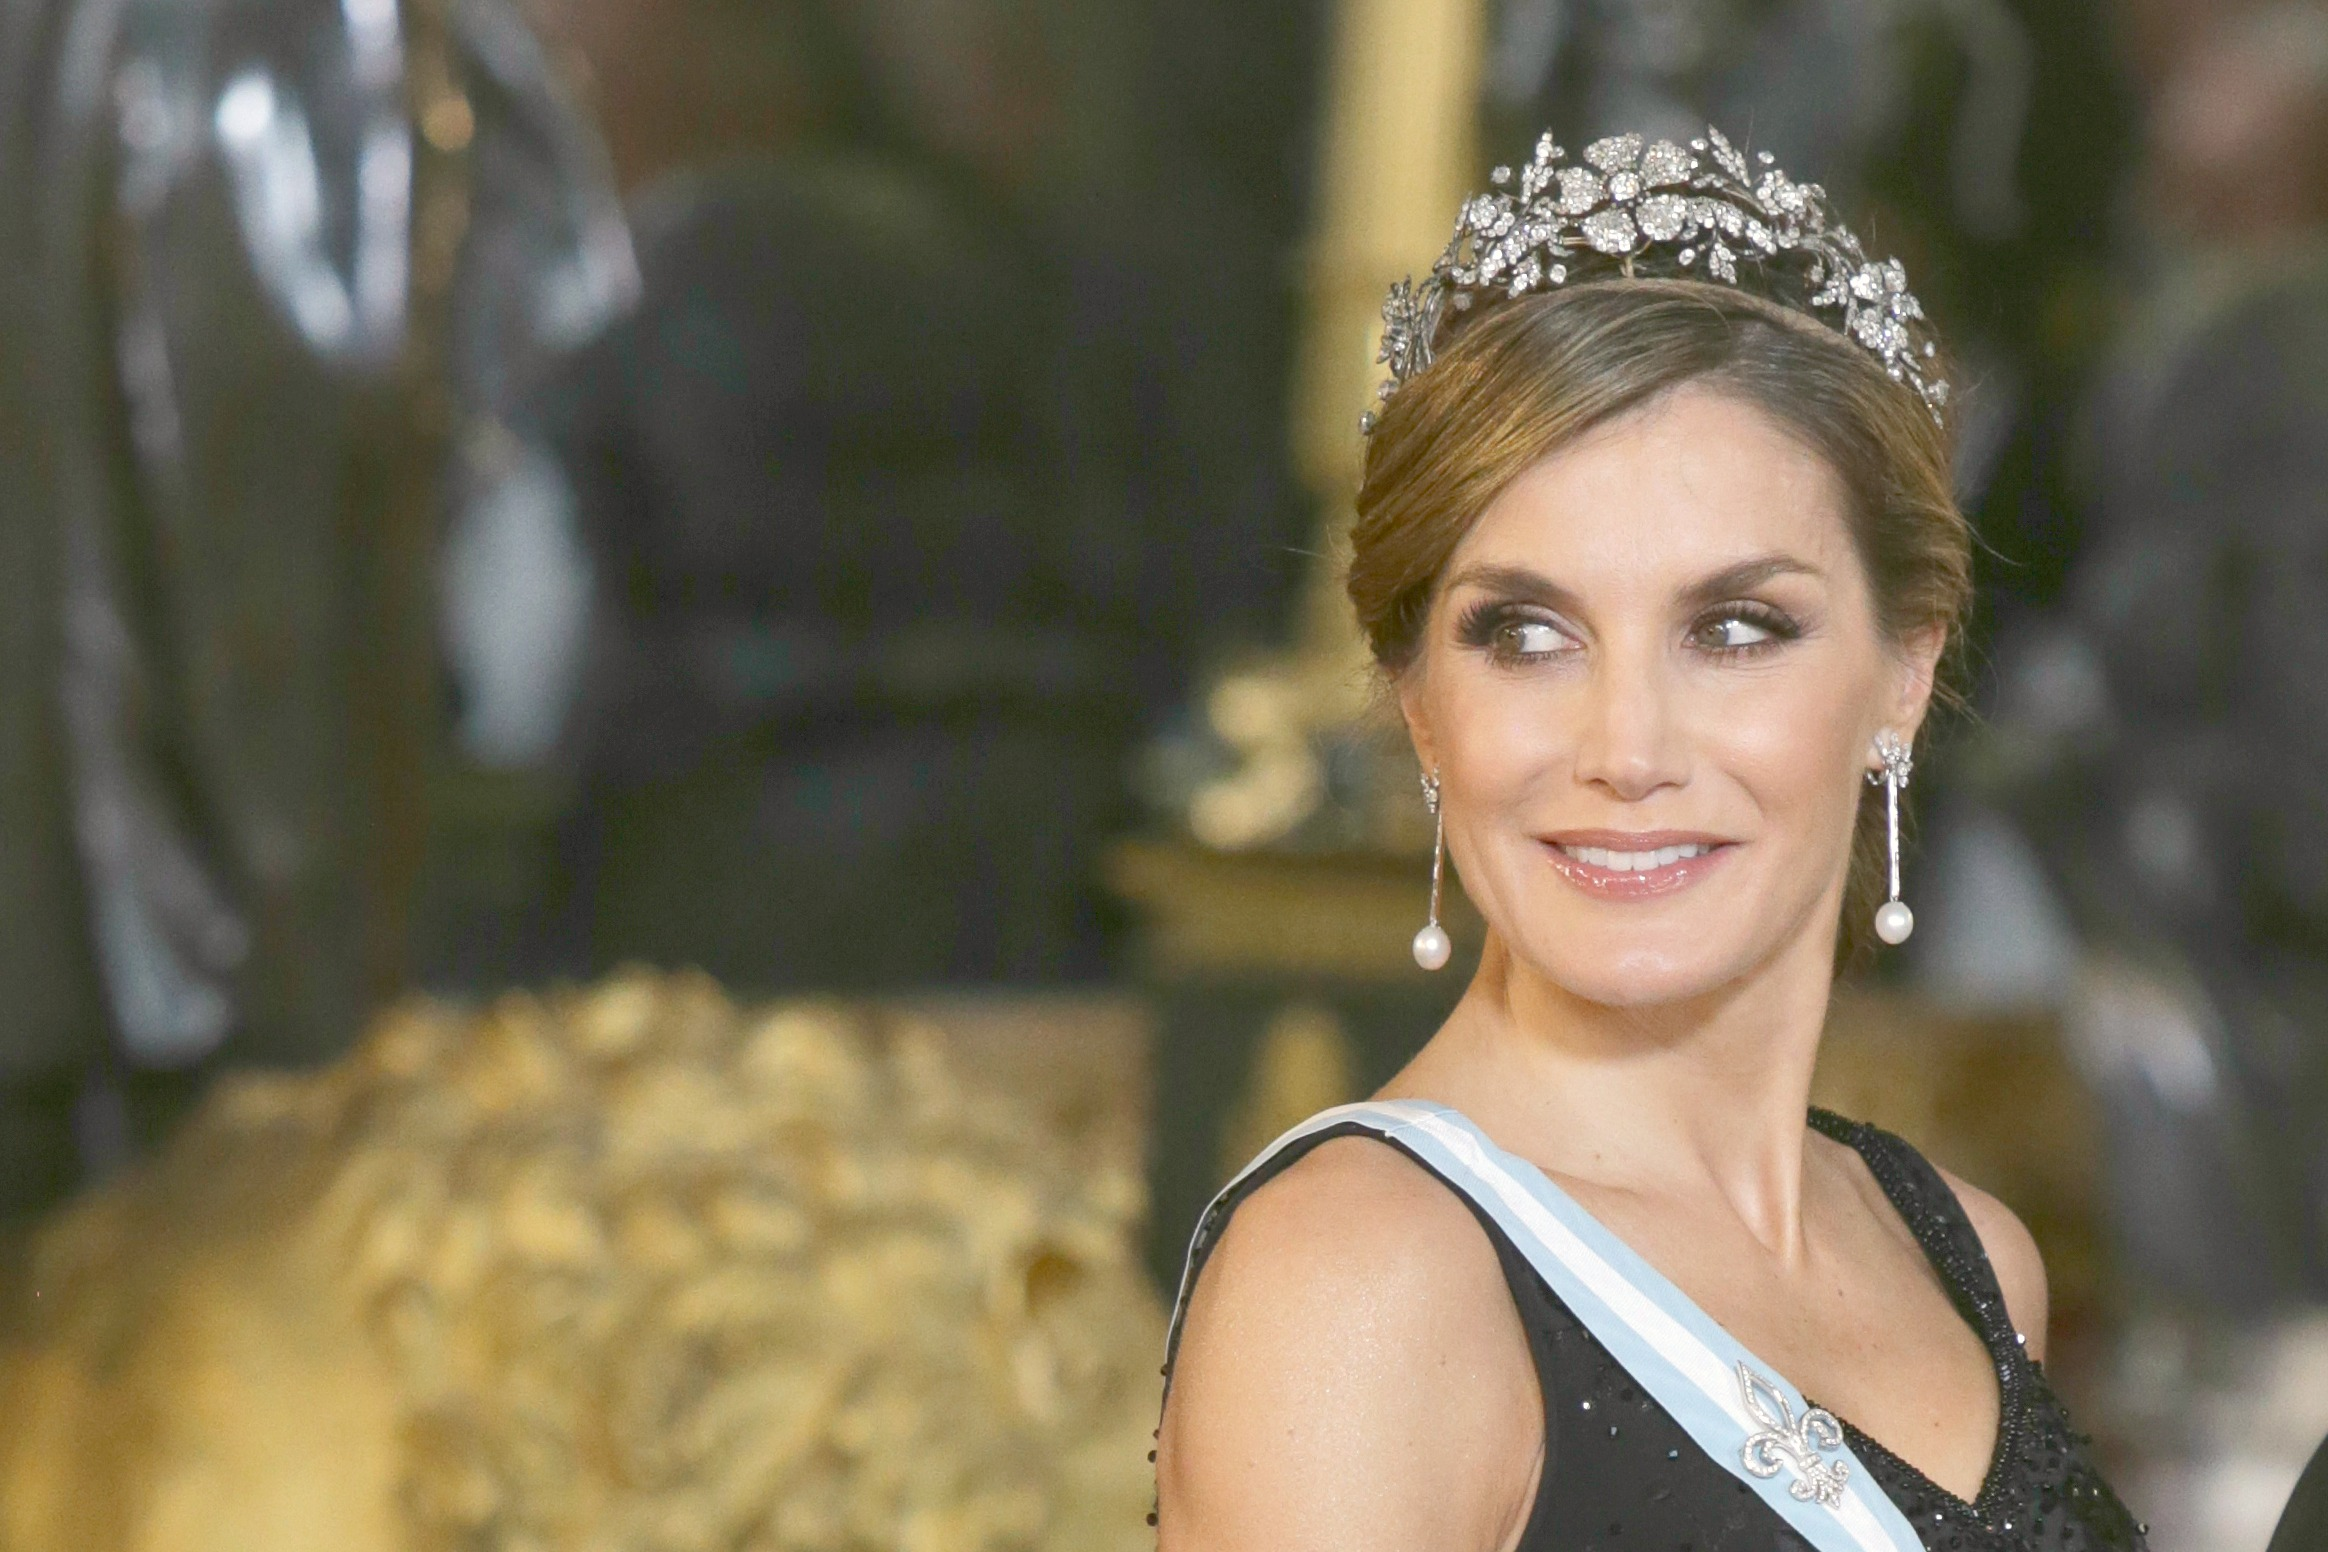 Letizia, the anchorwoman who became Queen of Spain